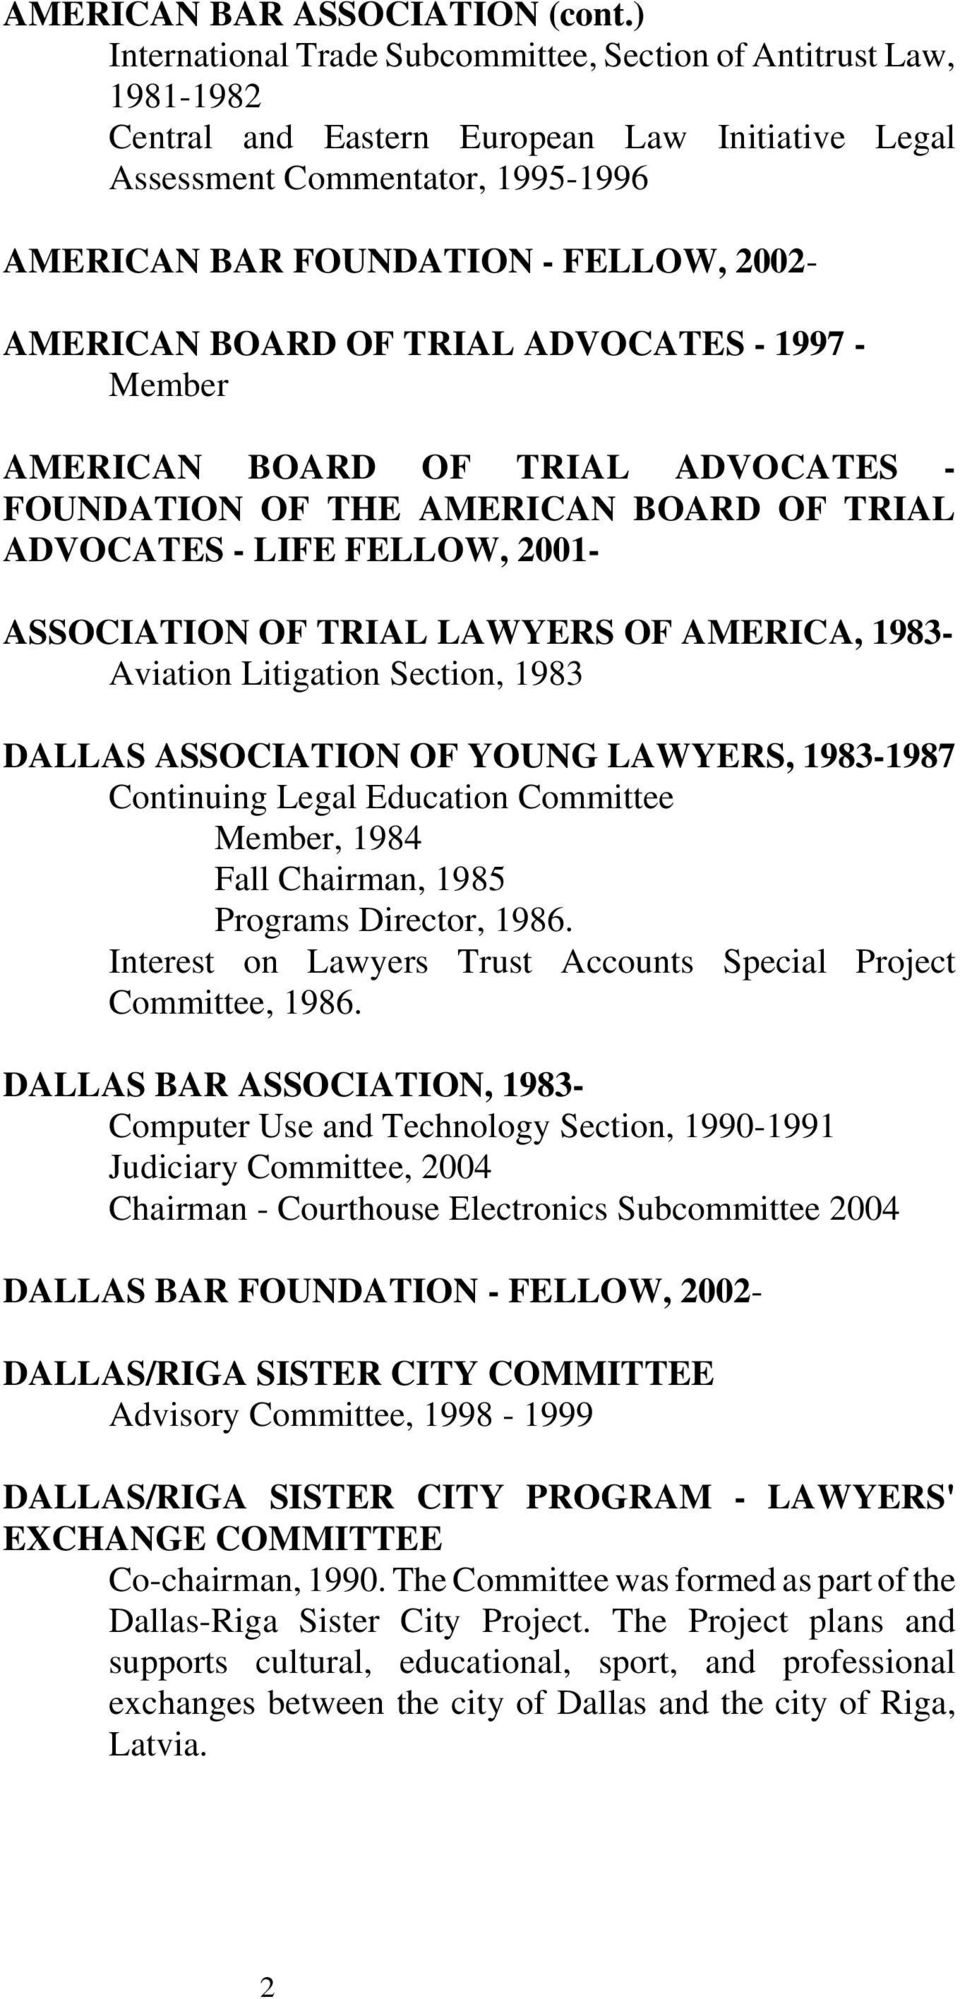 AMERICAN BOARD OF TRIAL ADVOCATES - 1997 - Member AMERICAN BOARD OF TRIAL ADVOCATES - FOUNDATION OF THE AMERICAN BOARD OF TRIAL ADVOCATES - LIFE FELLOW, 2001- ASSOCIATION OF TRIAL LAWYERS OF AMERICA,